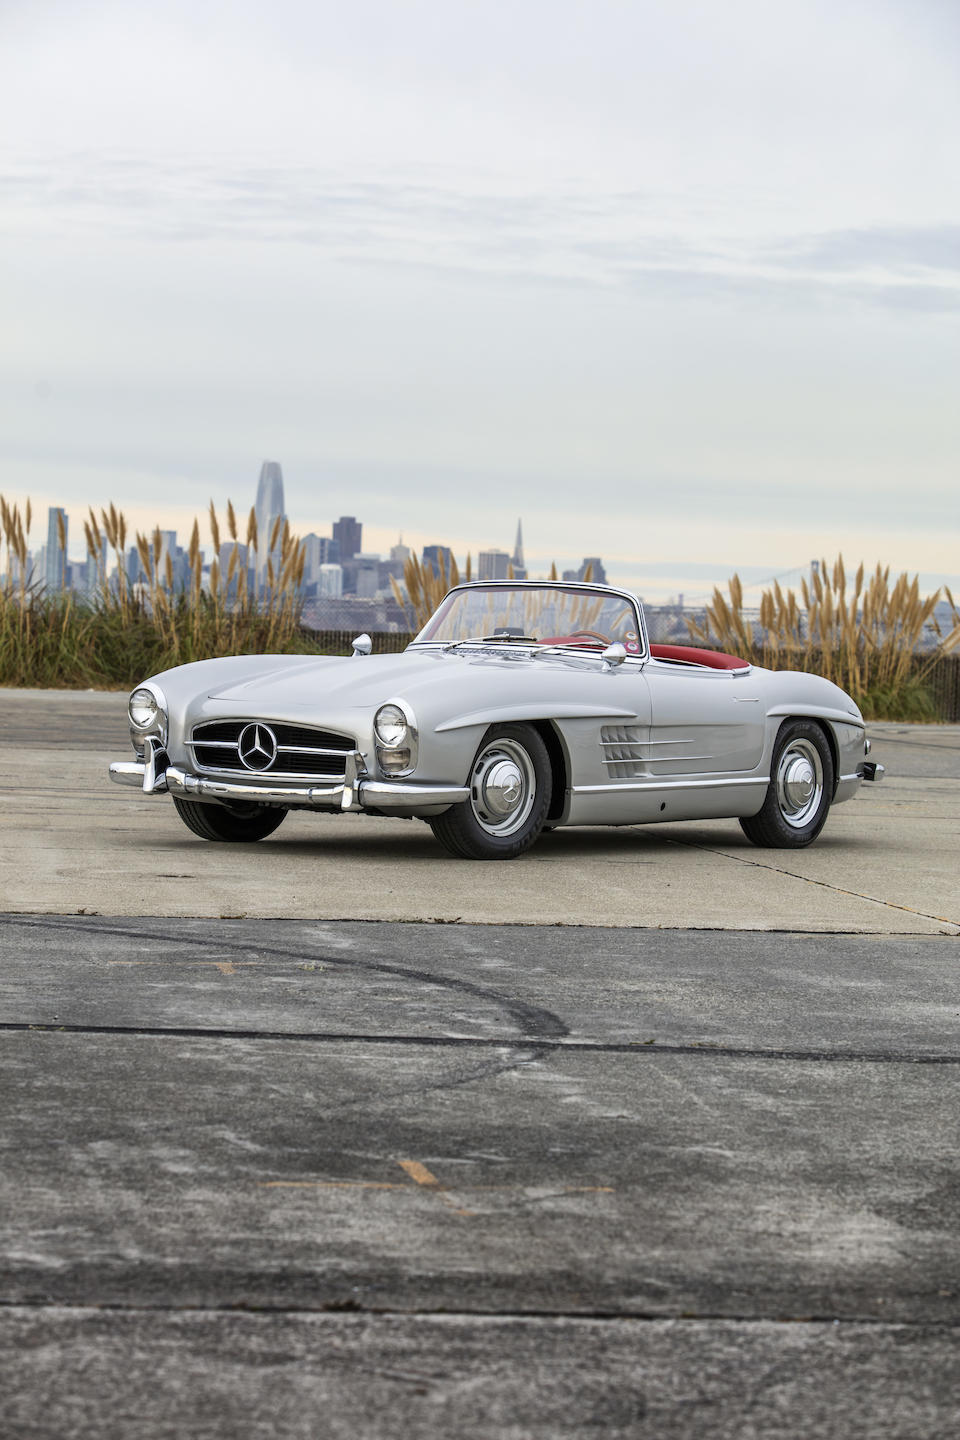 <b>1957 Mercedes-Benz 300SL Roadster</b><br />Chassis no. 198.042.7500532<br />Engine no. 198.980.7500431